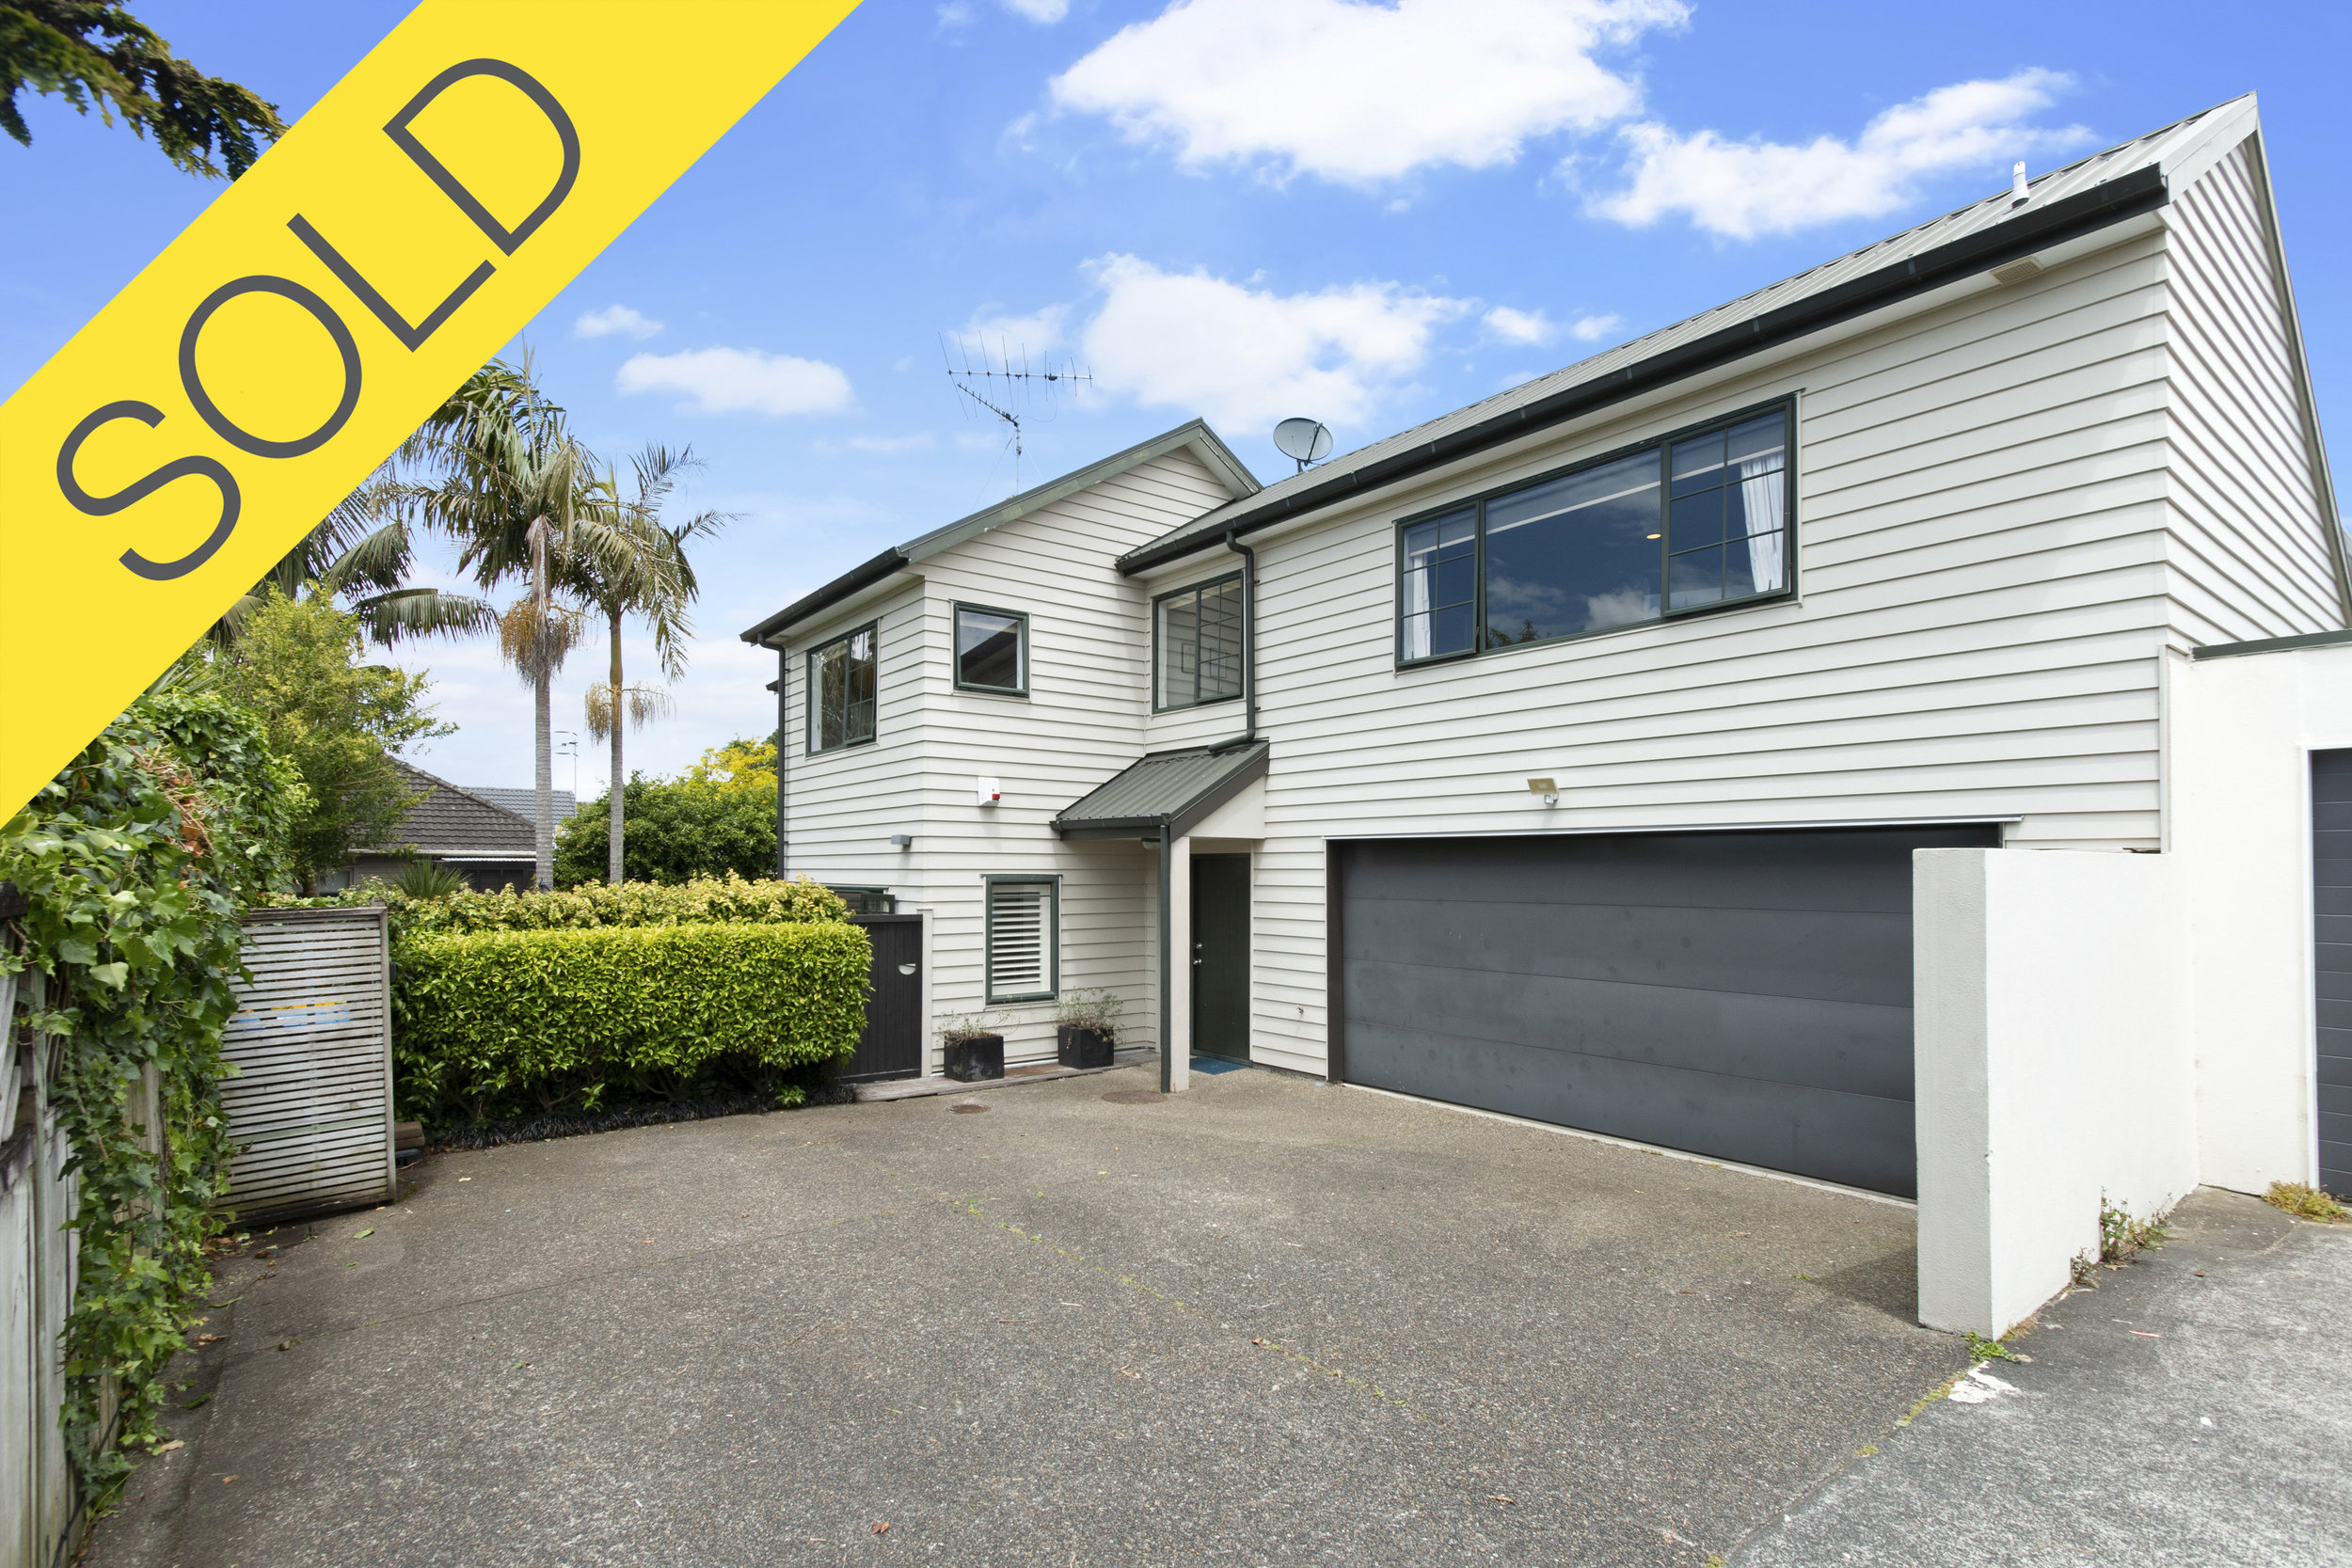 205A Campbell Road, Greenlane, Auckland - SOLD FEBRUARY 20193 Beds I 2 Baths I 4 Car